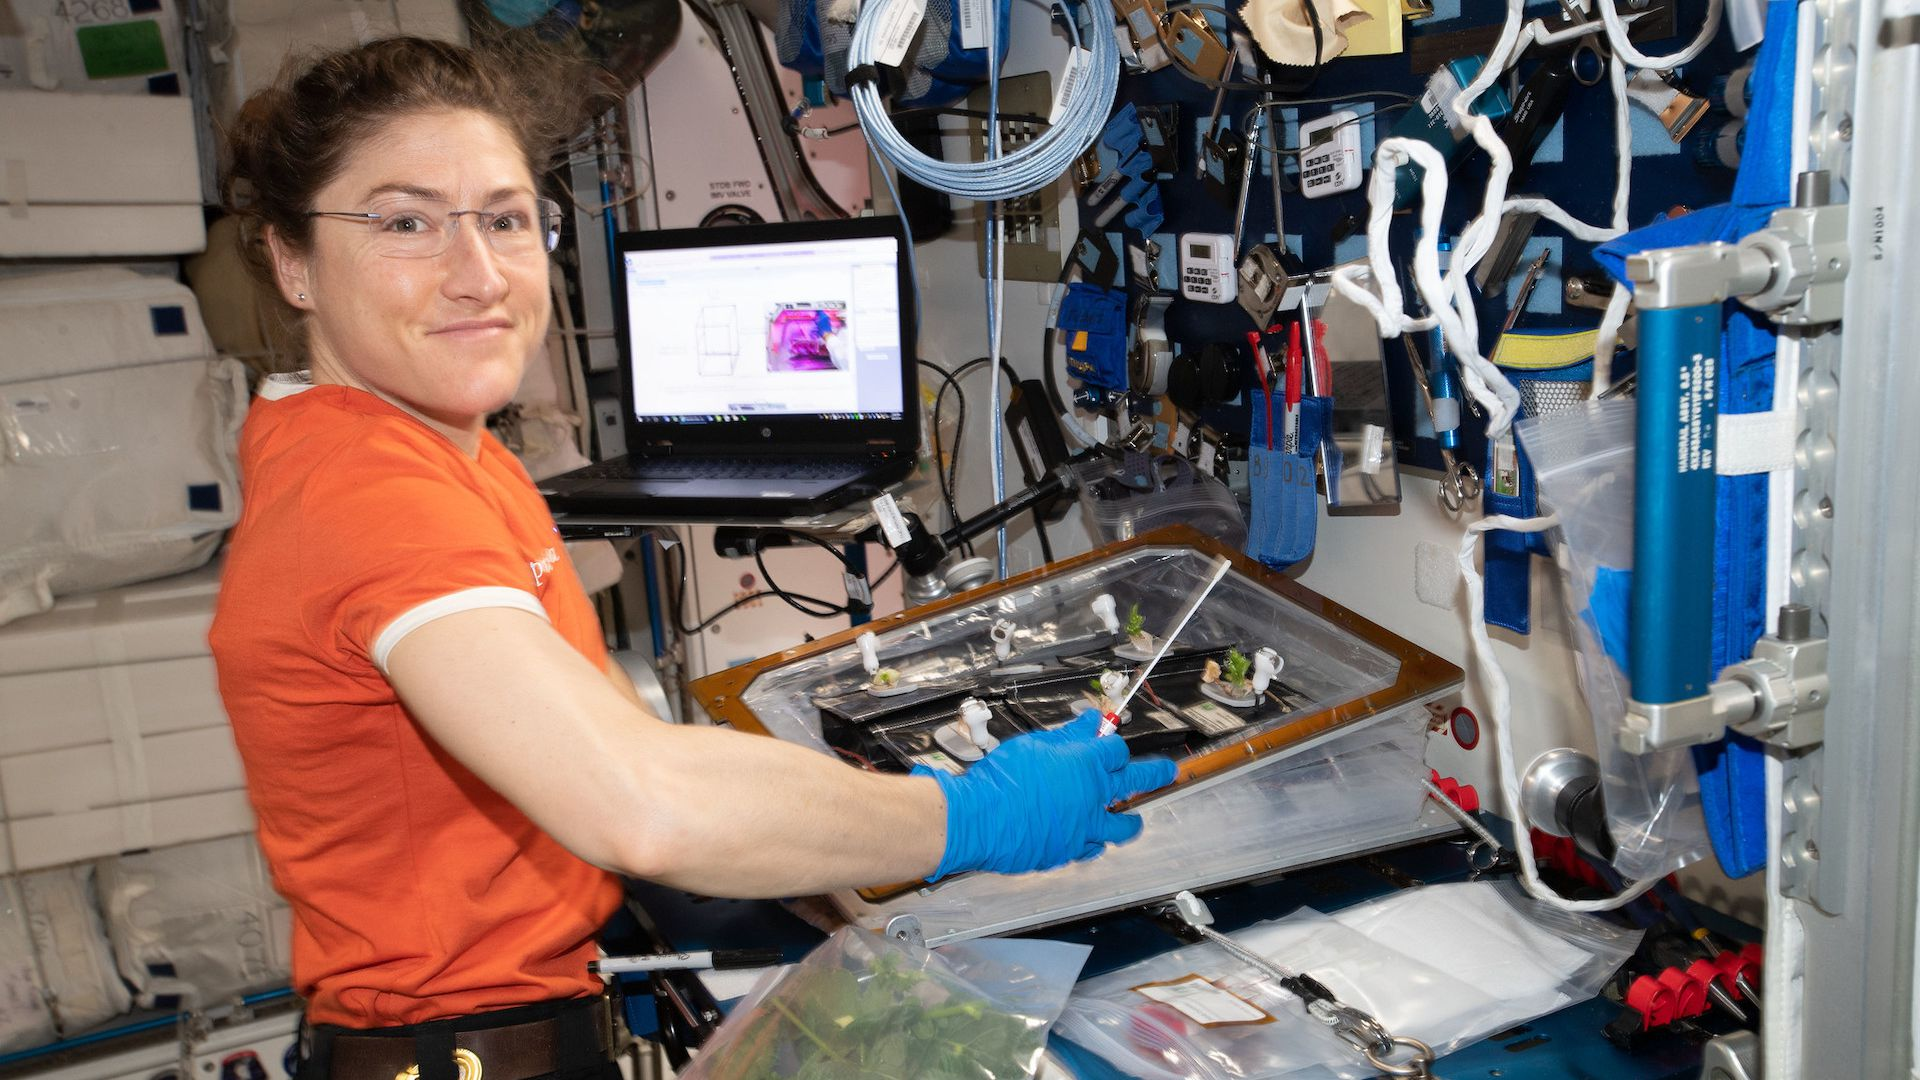 NASA astronaut Christina Koch performing an experiment on the International Space Station